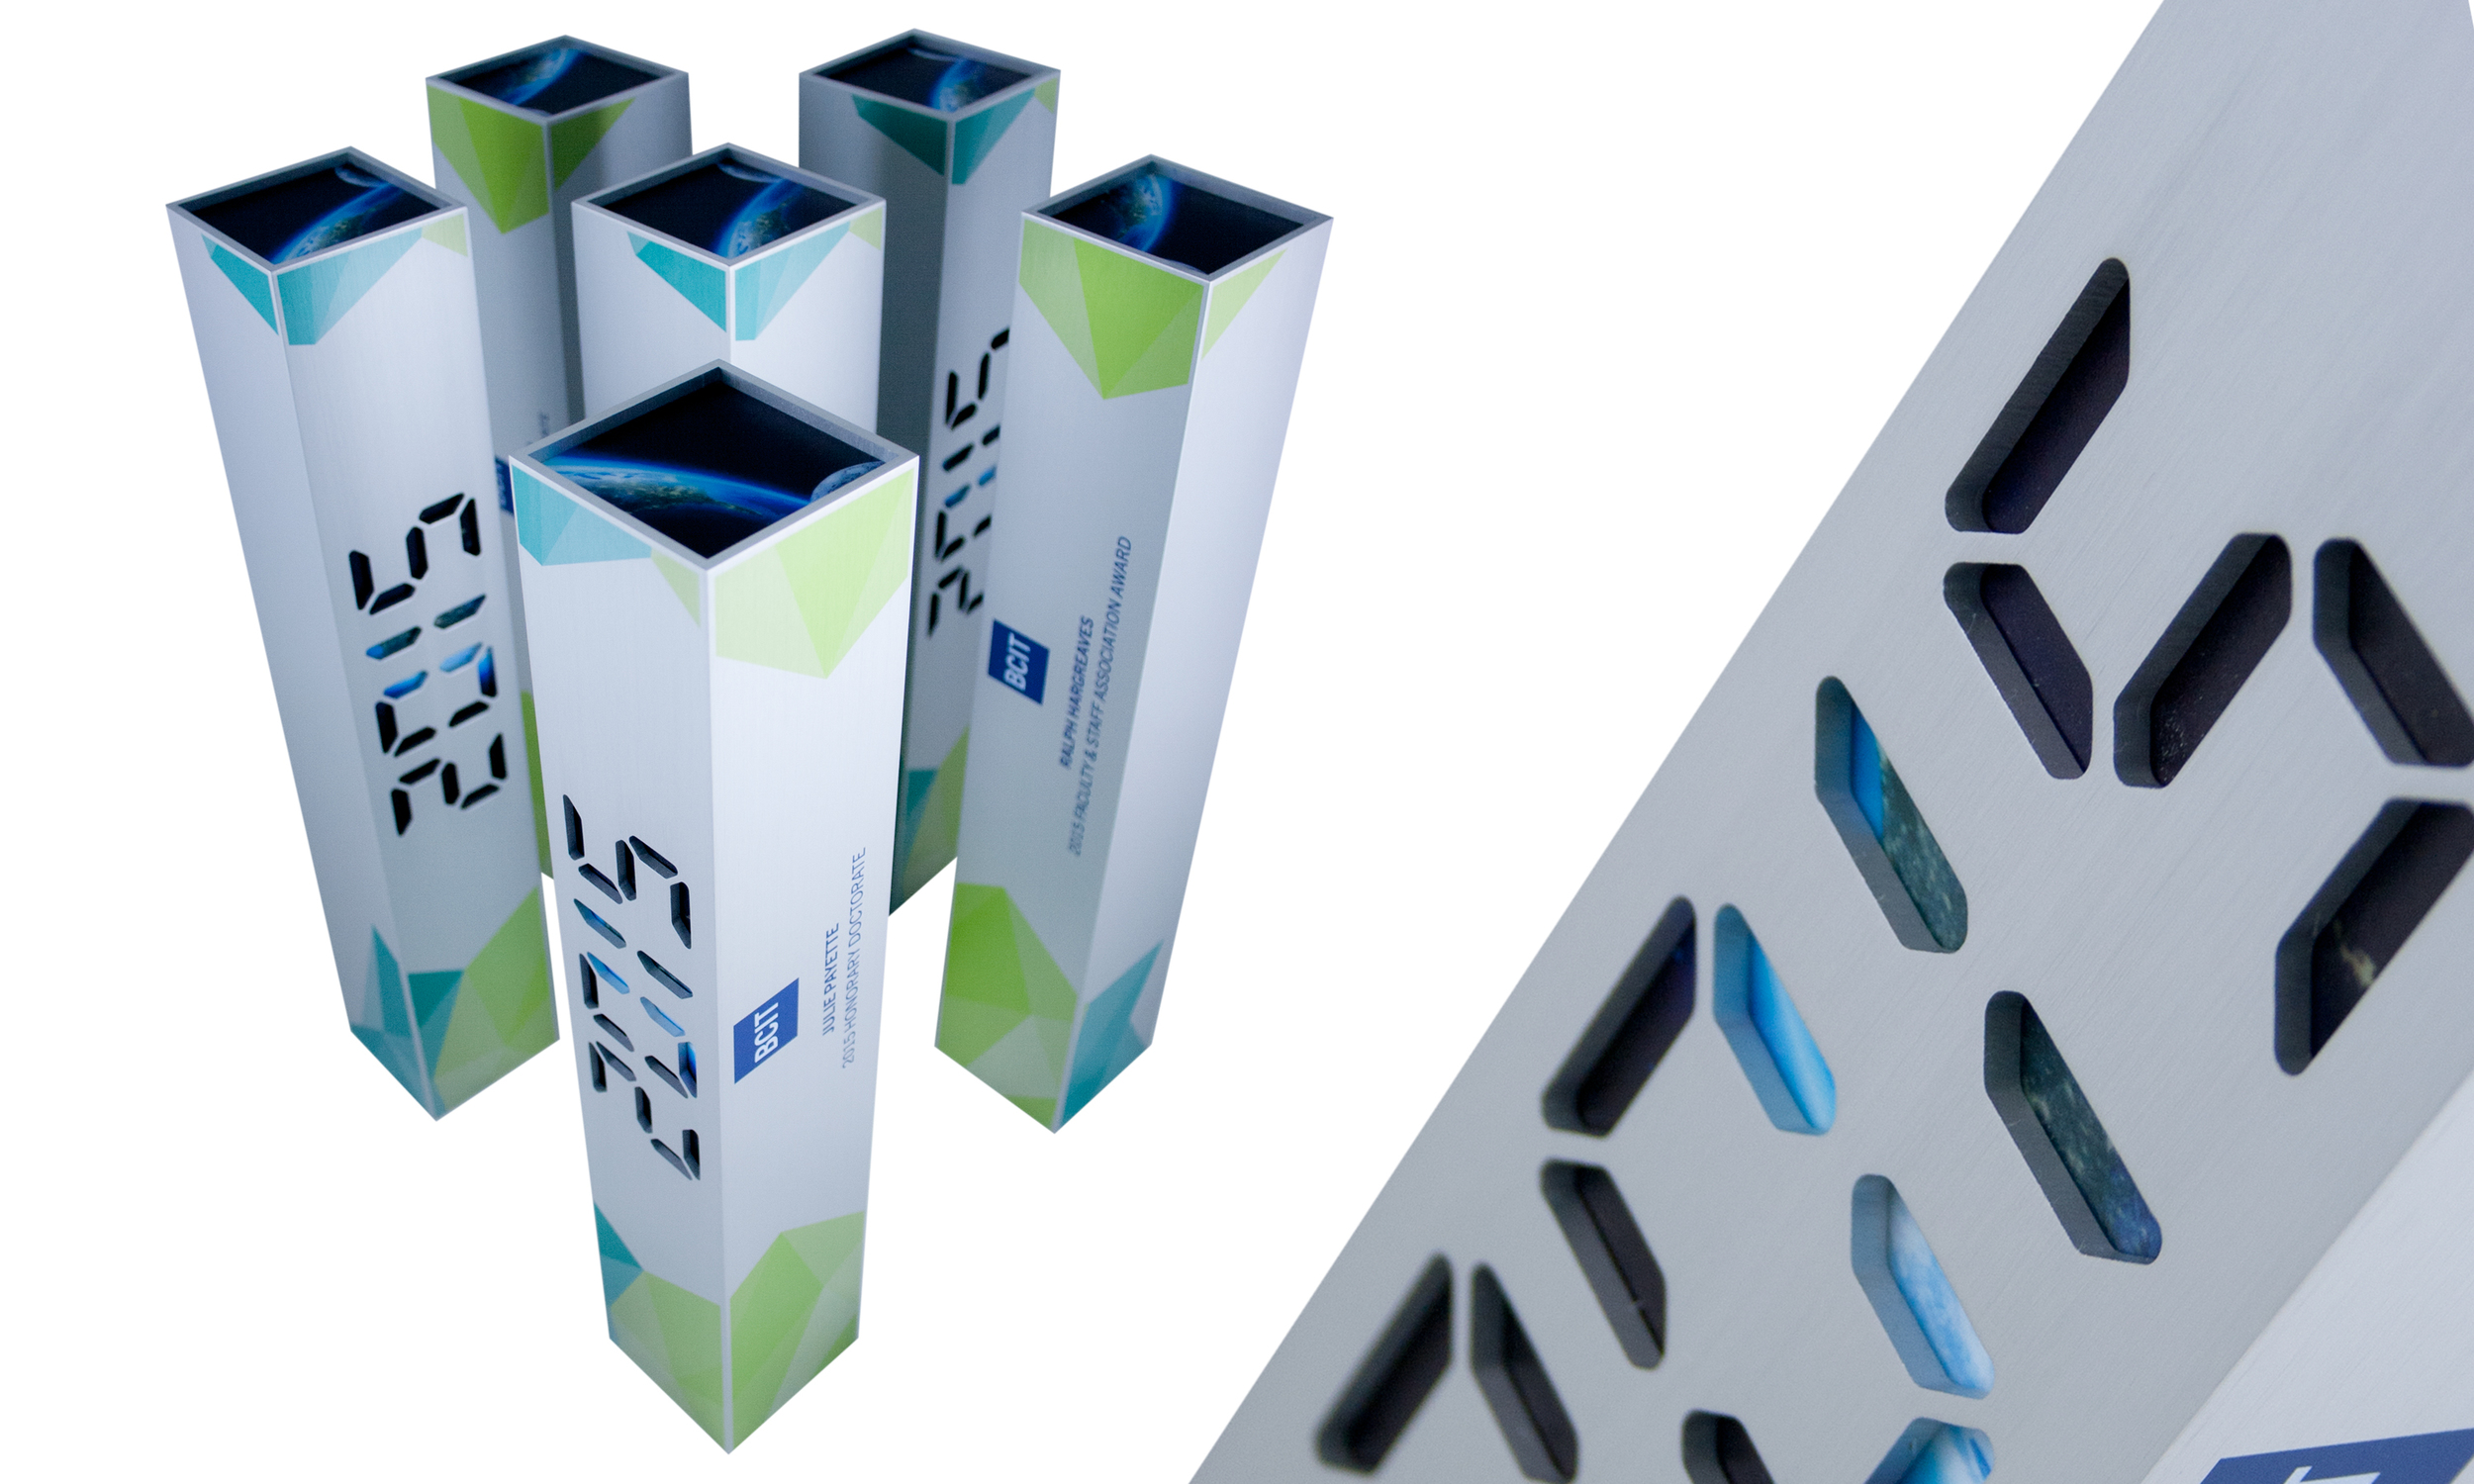 bcit creative awards trophies space technology